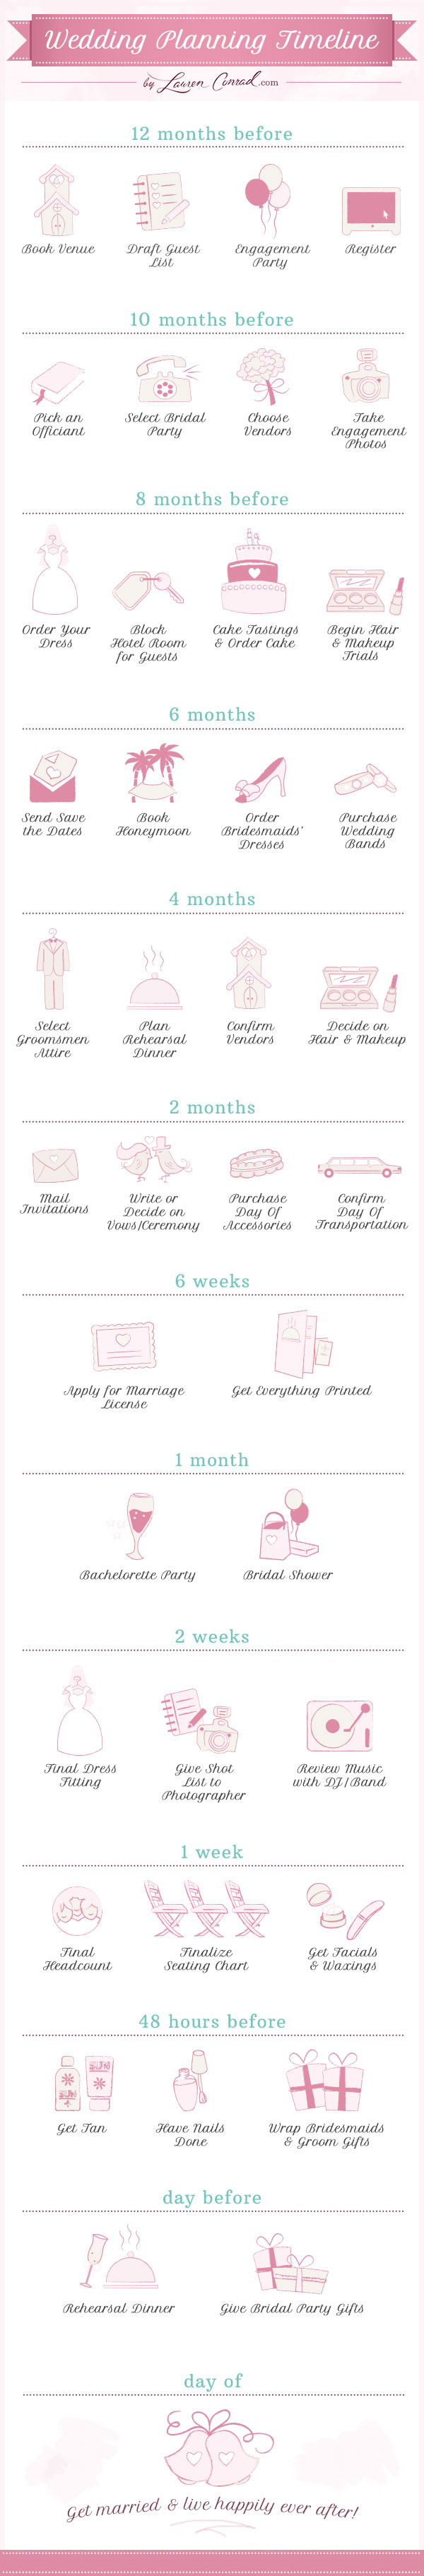 planning a diy wedding creating your own wedding planning